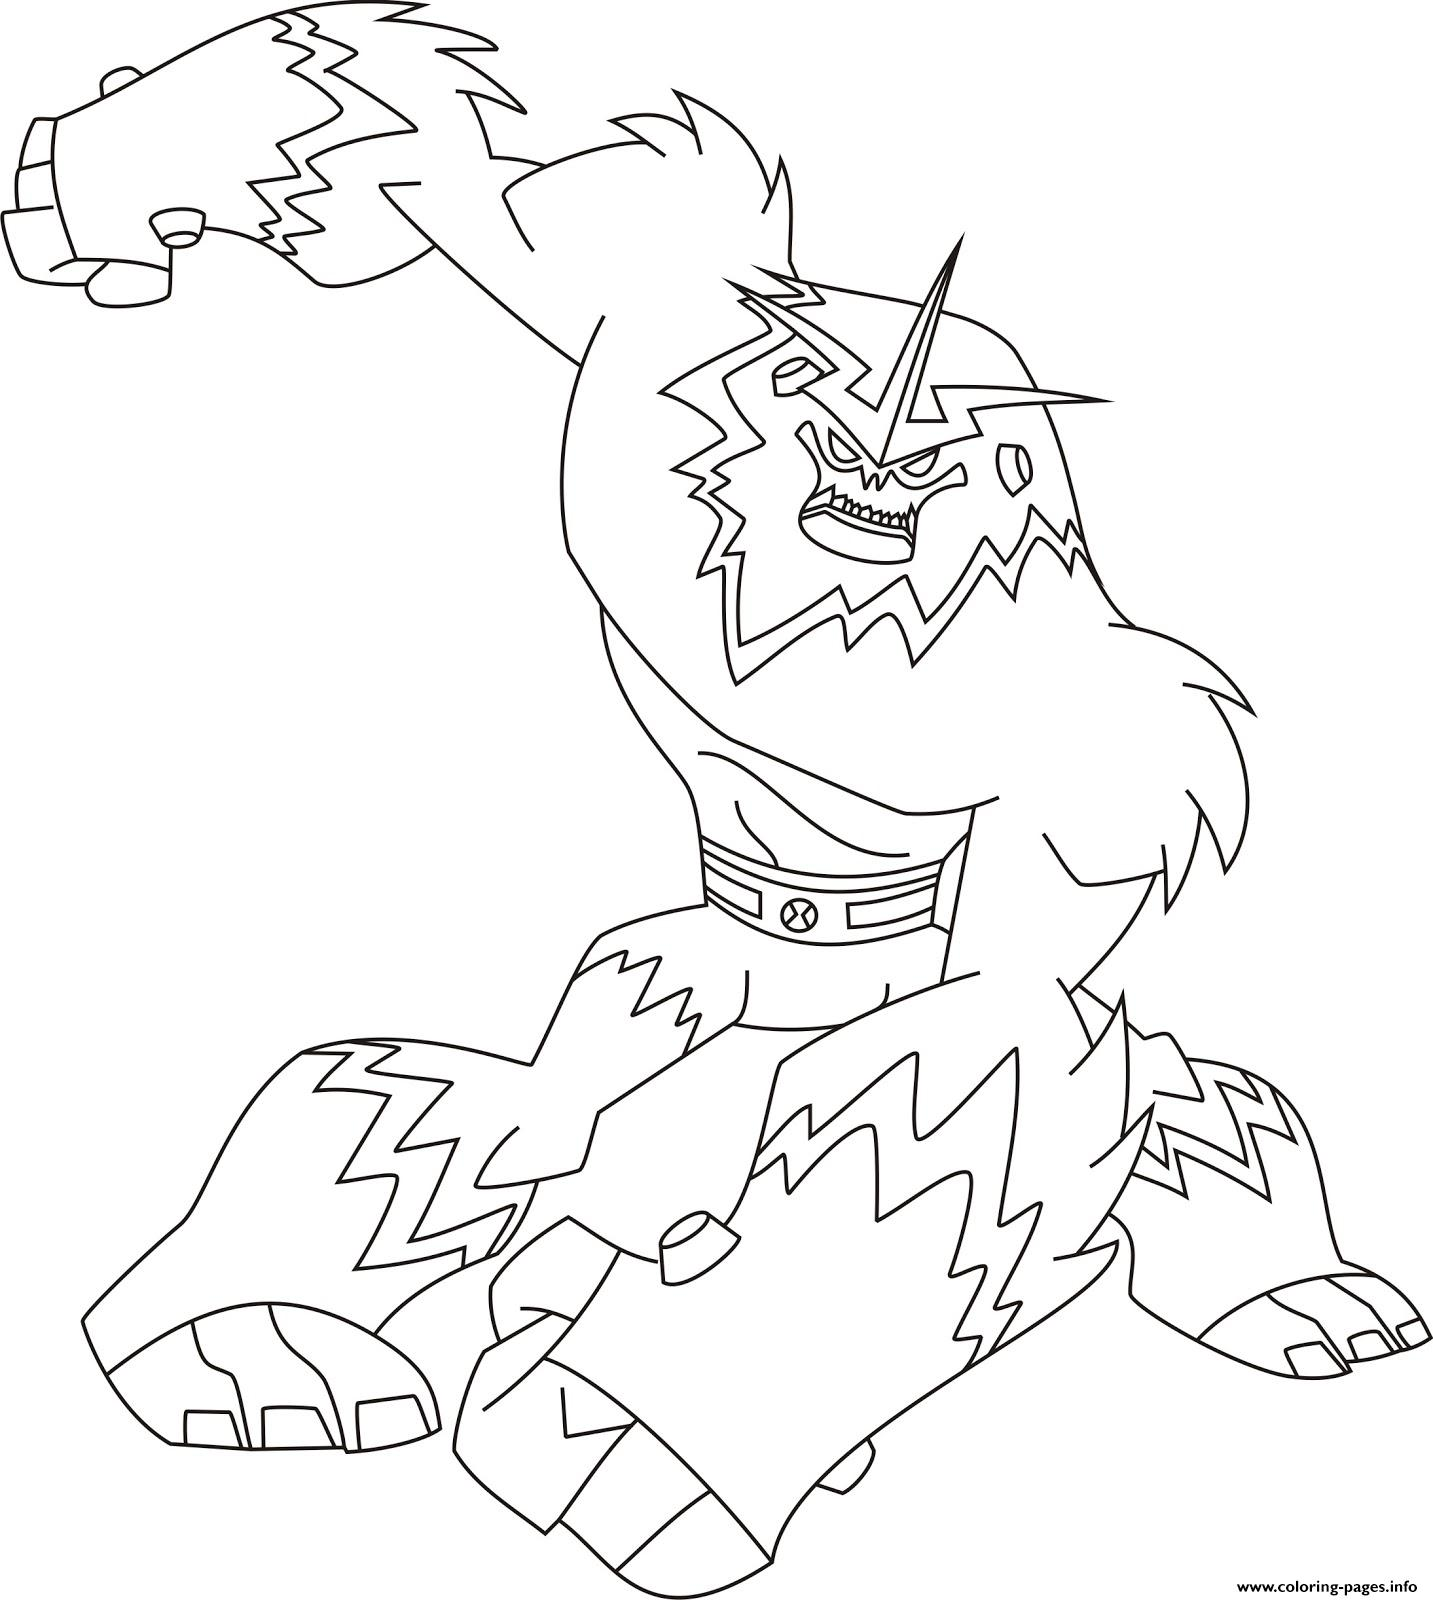 Coloring pages printable ben 10